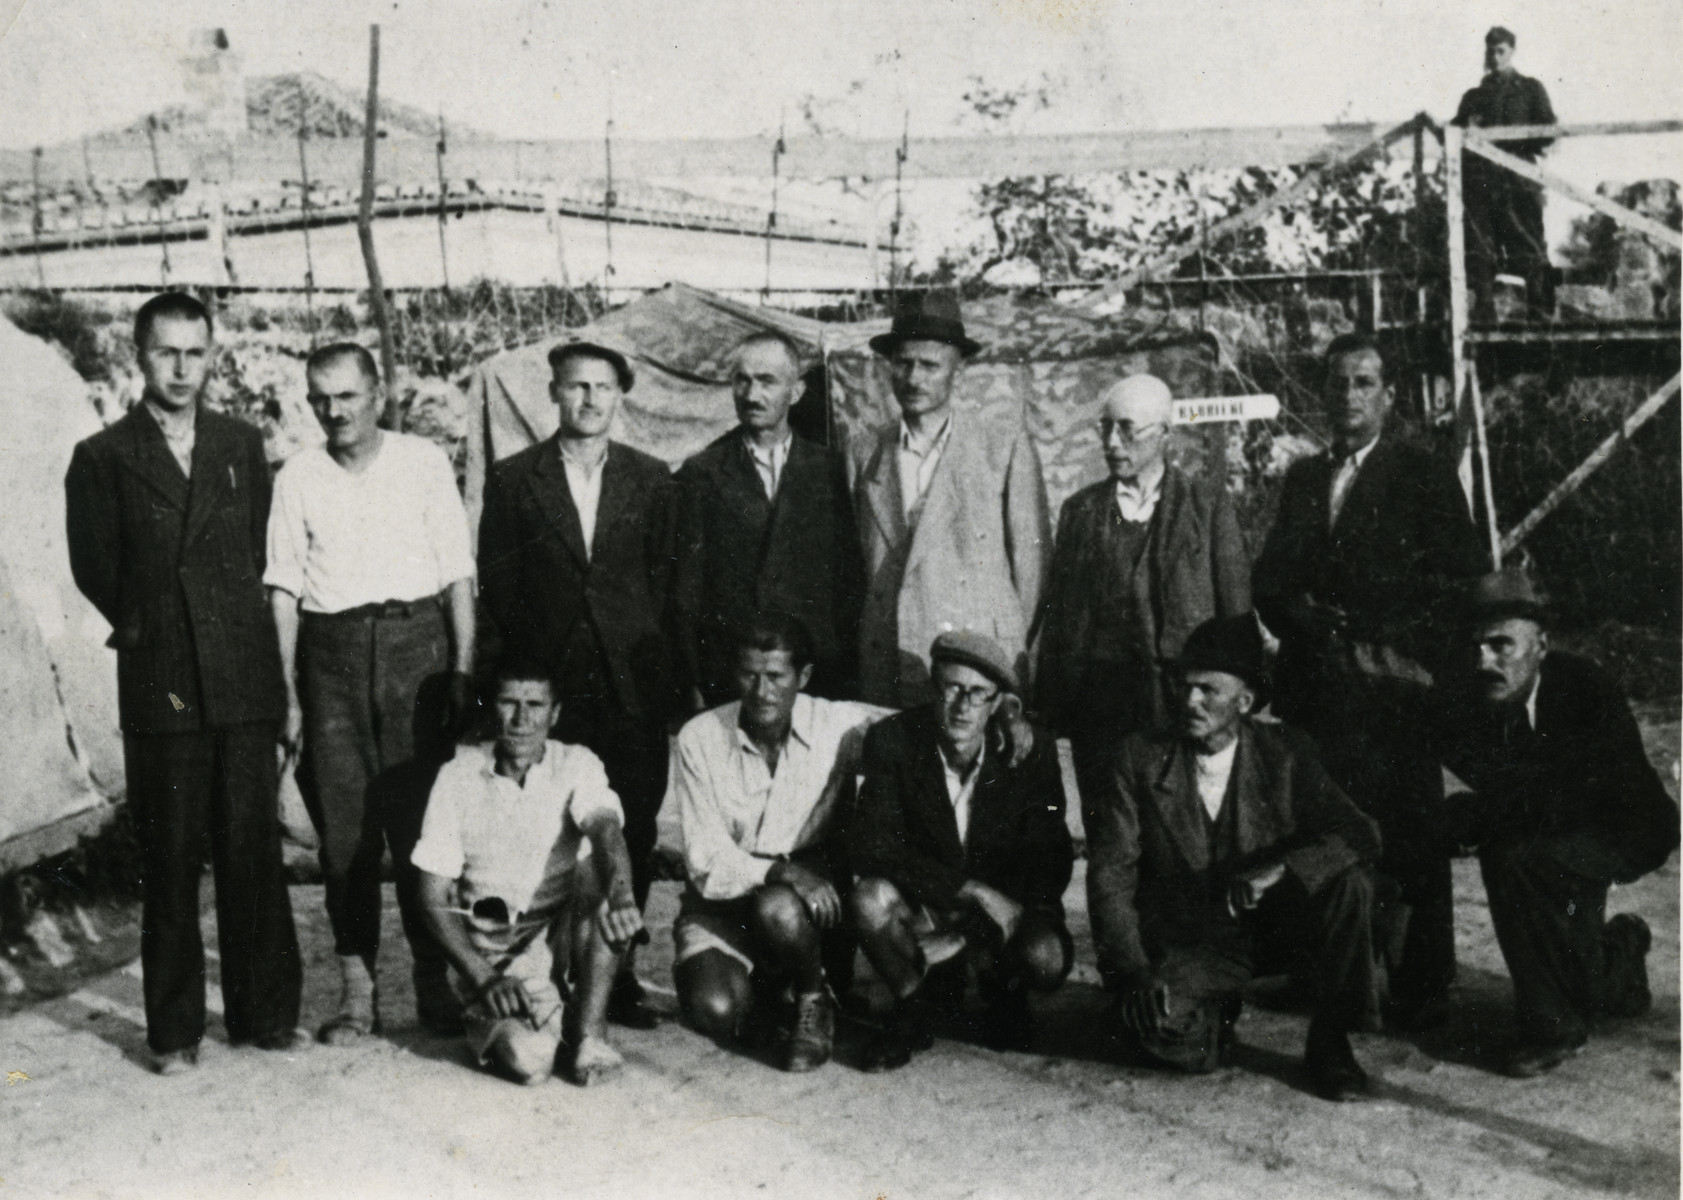 Group portrait of prisoners in the Preza concentration camp.  Dr. Joseph Teitelbaum is standing second from the right,